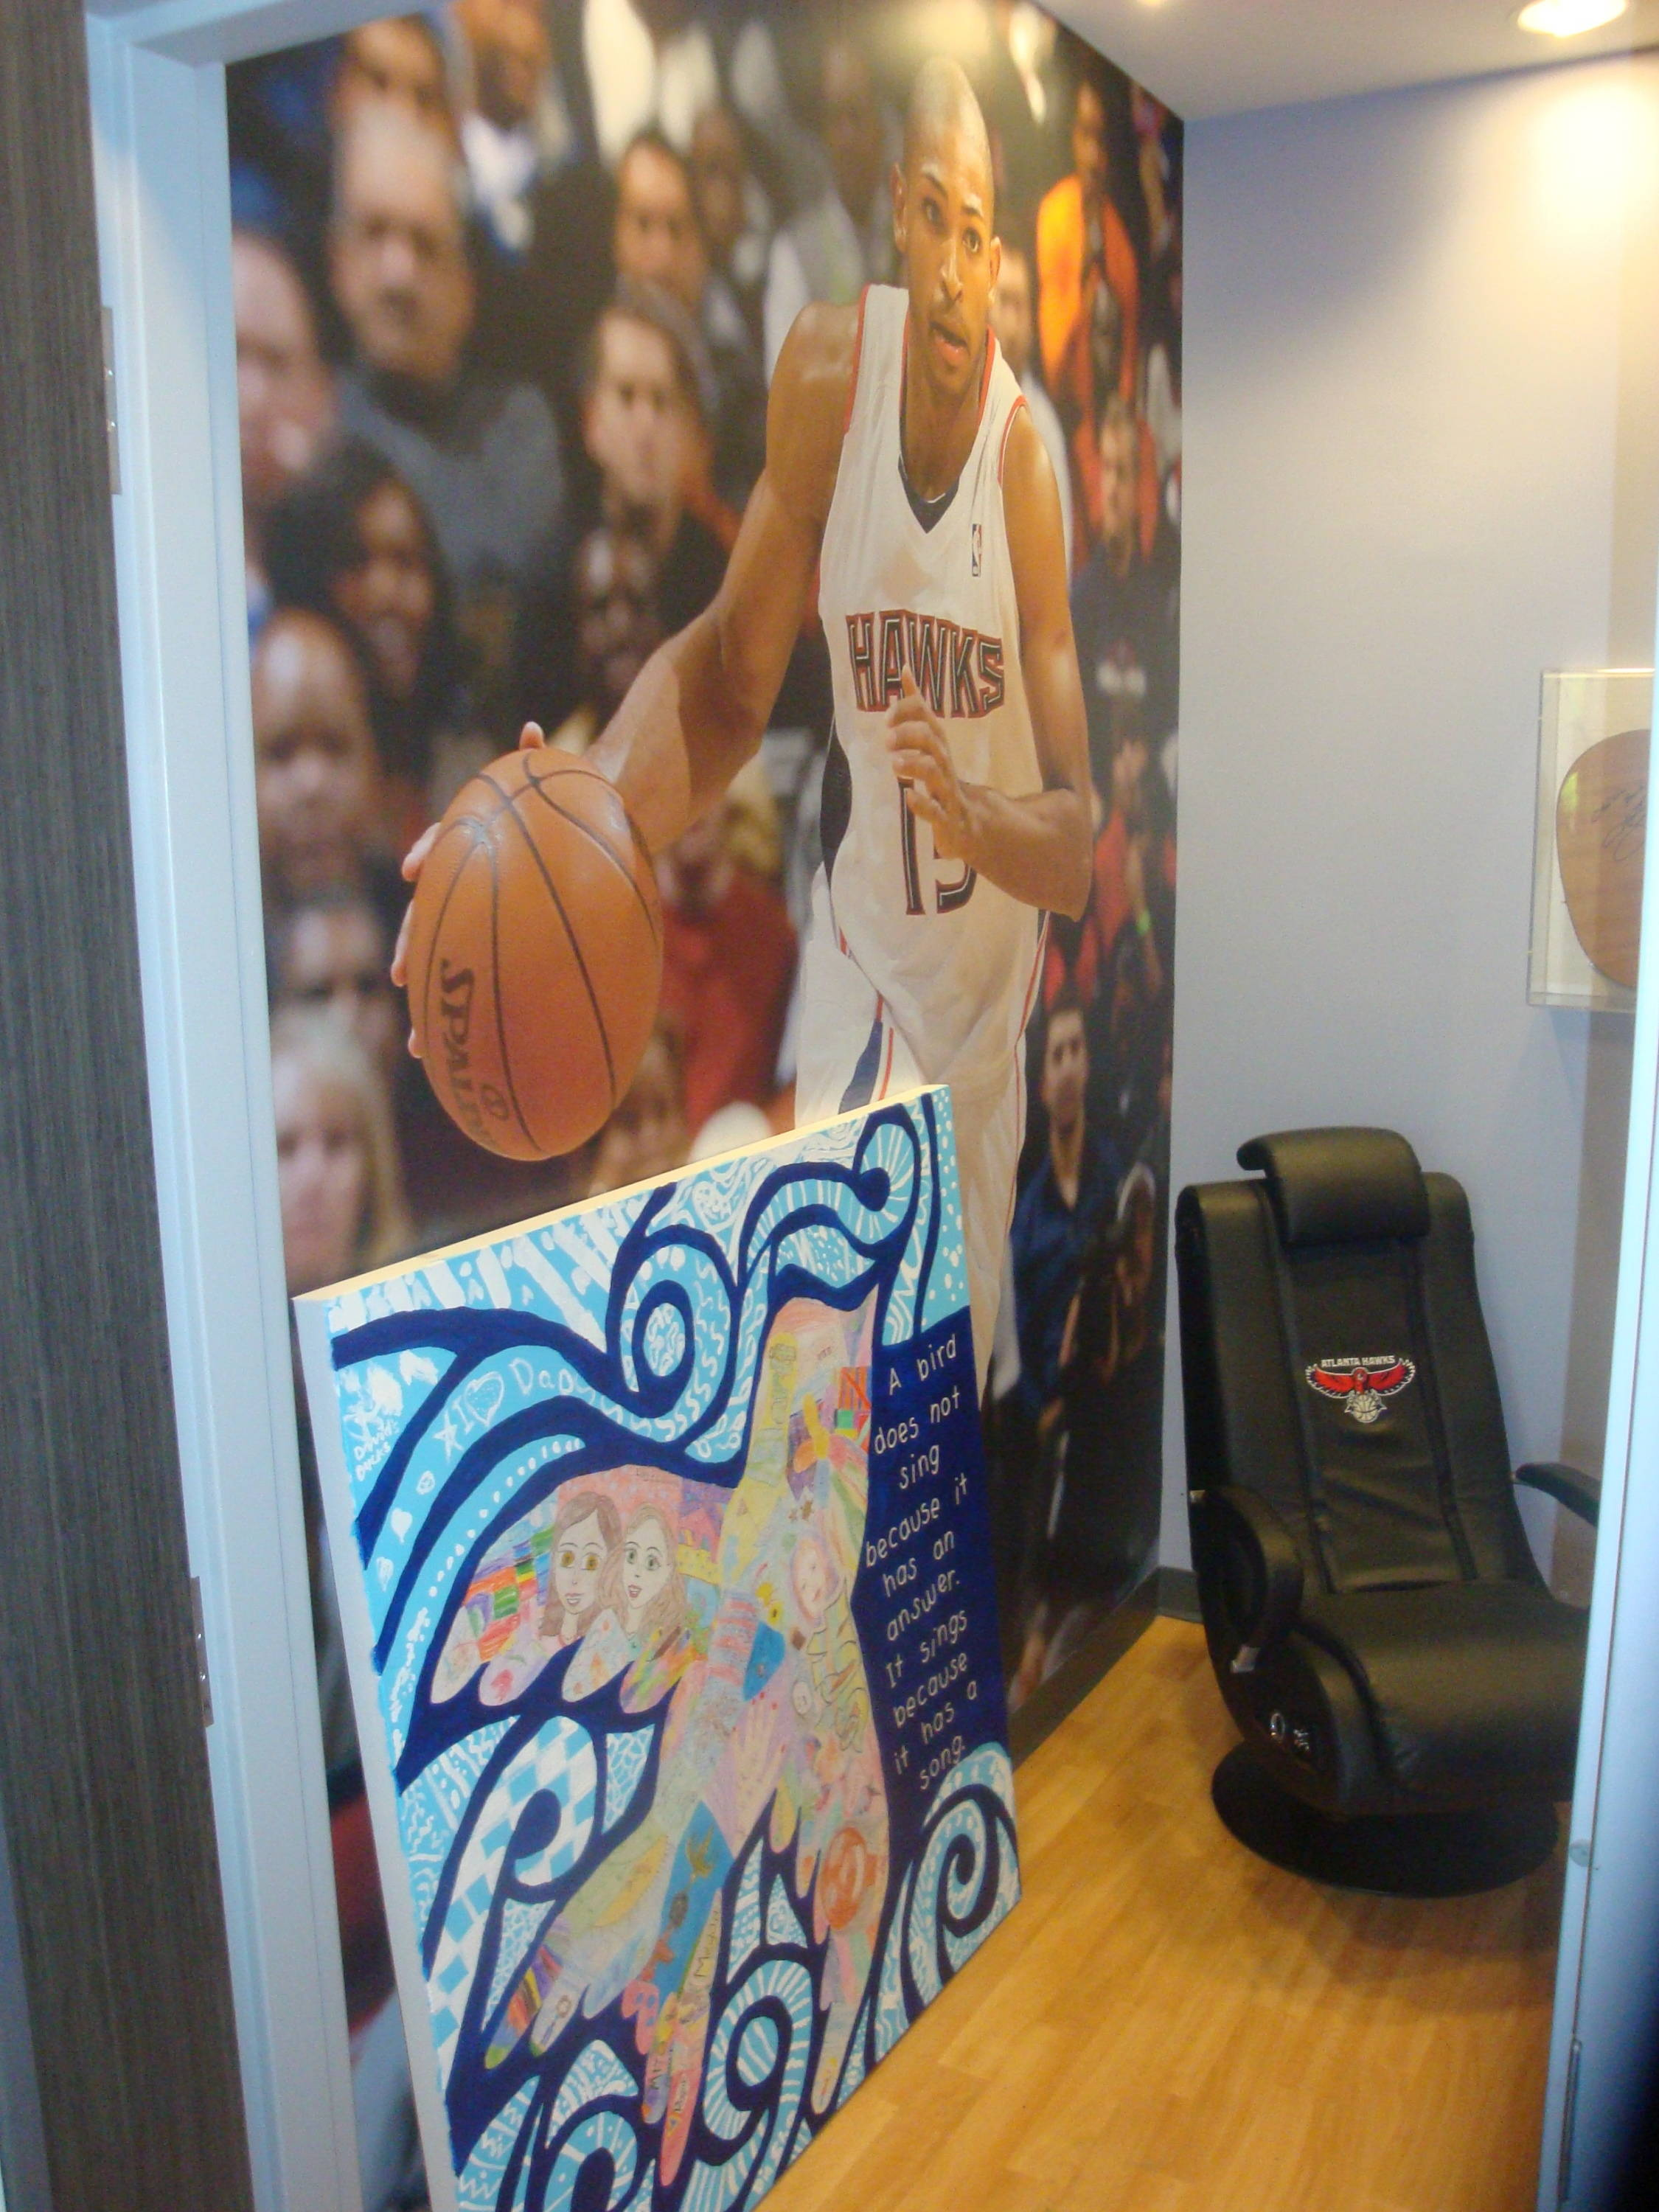 Here is a play room that features the Atlanta Hawks